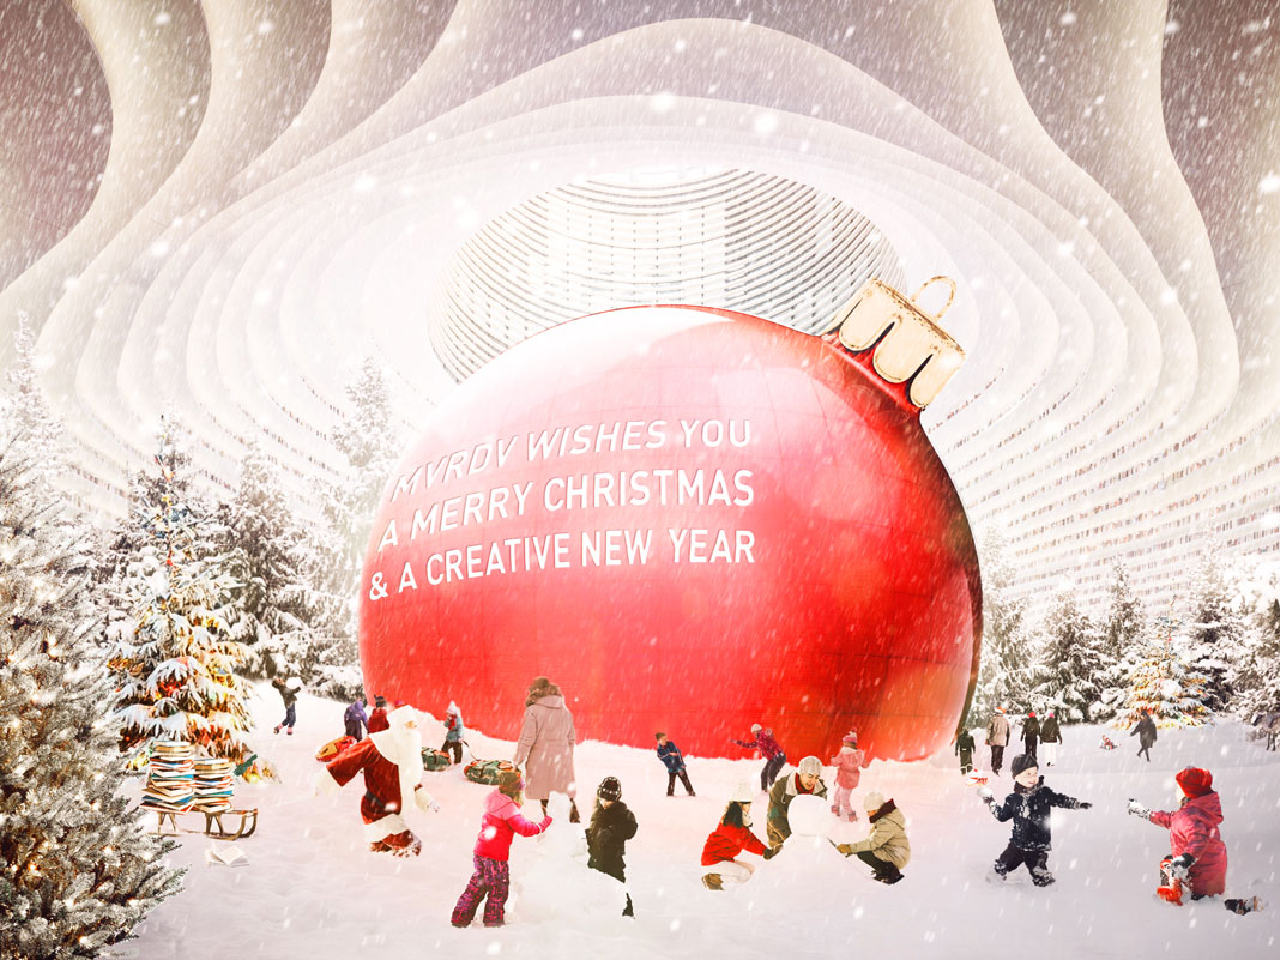 mvrdv wishes you a merry christmas and a creative new year